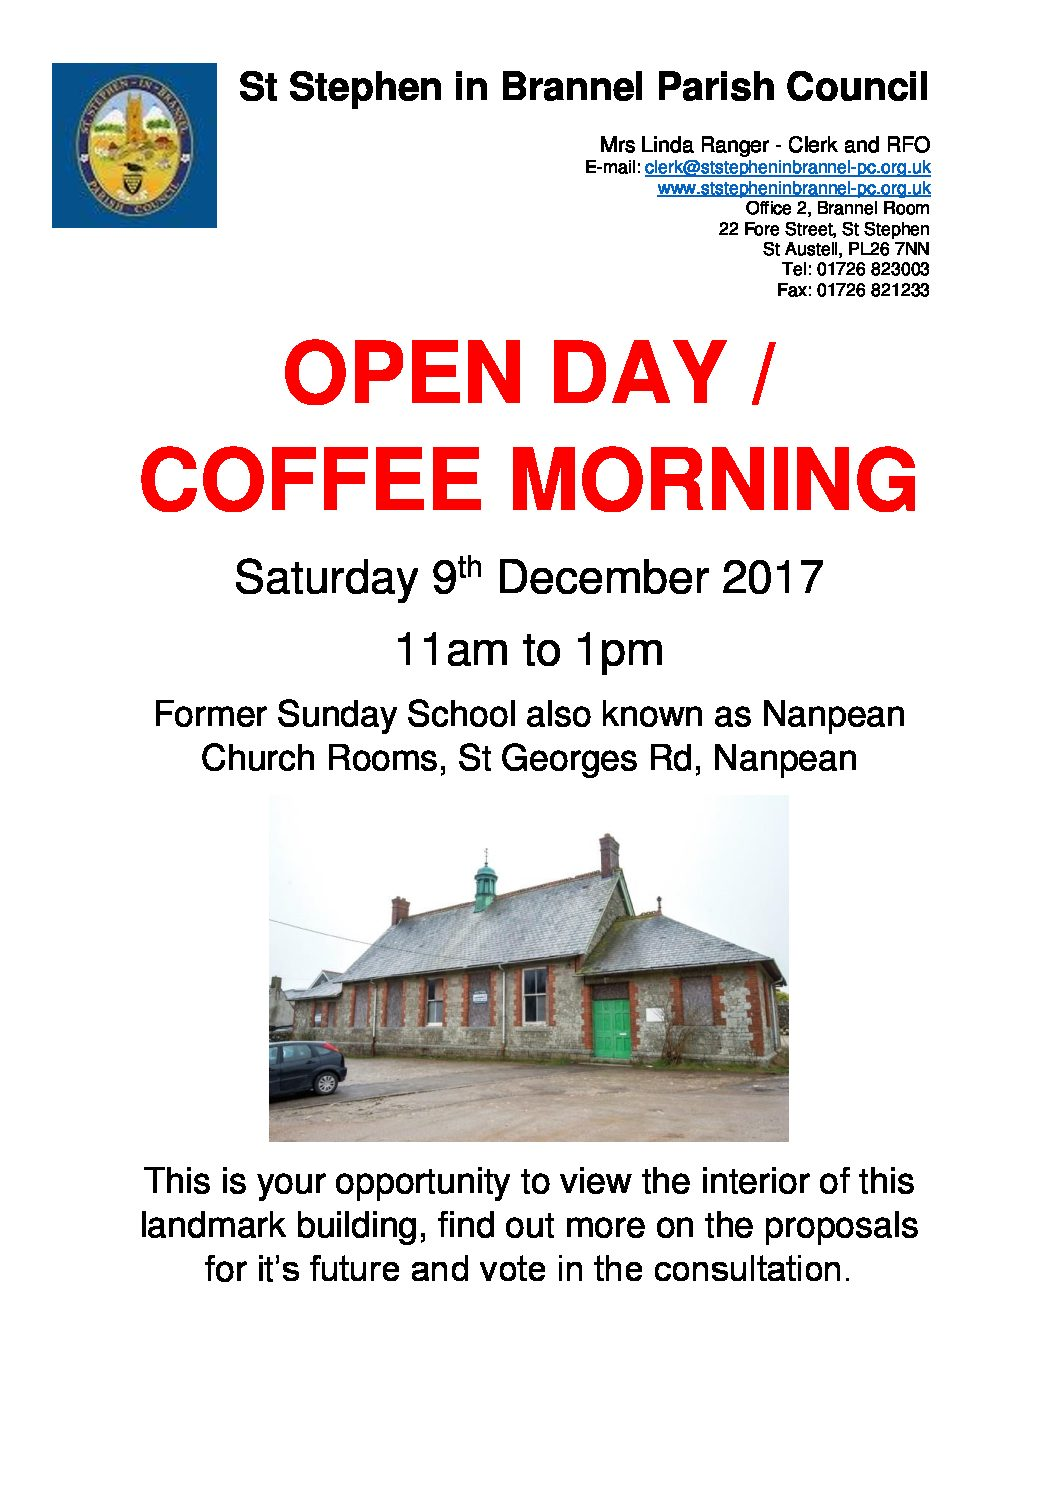 Open Day / Coffee Morning